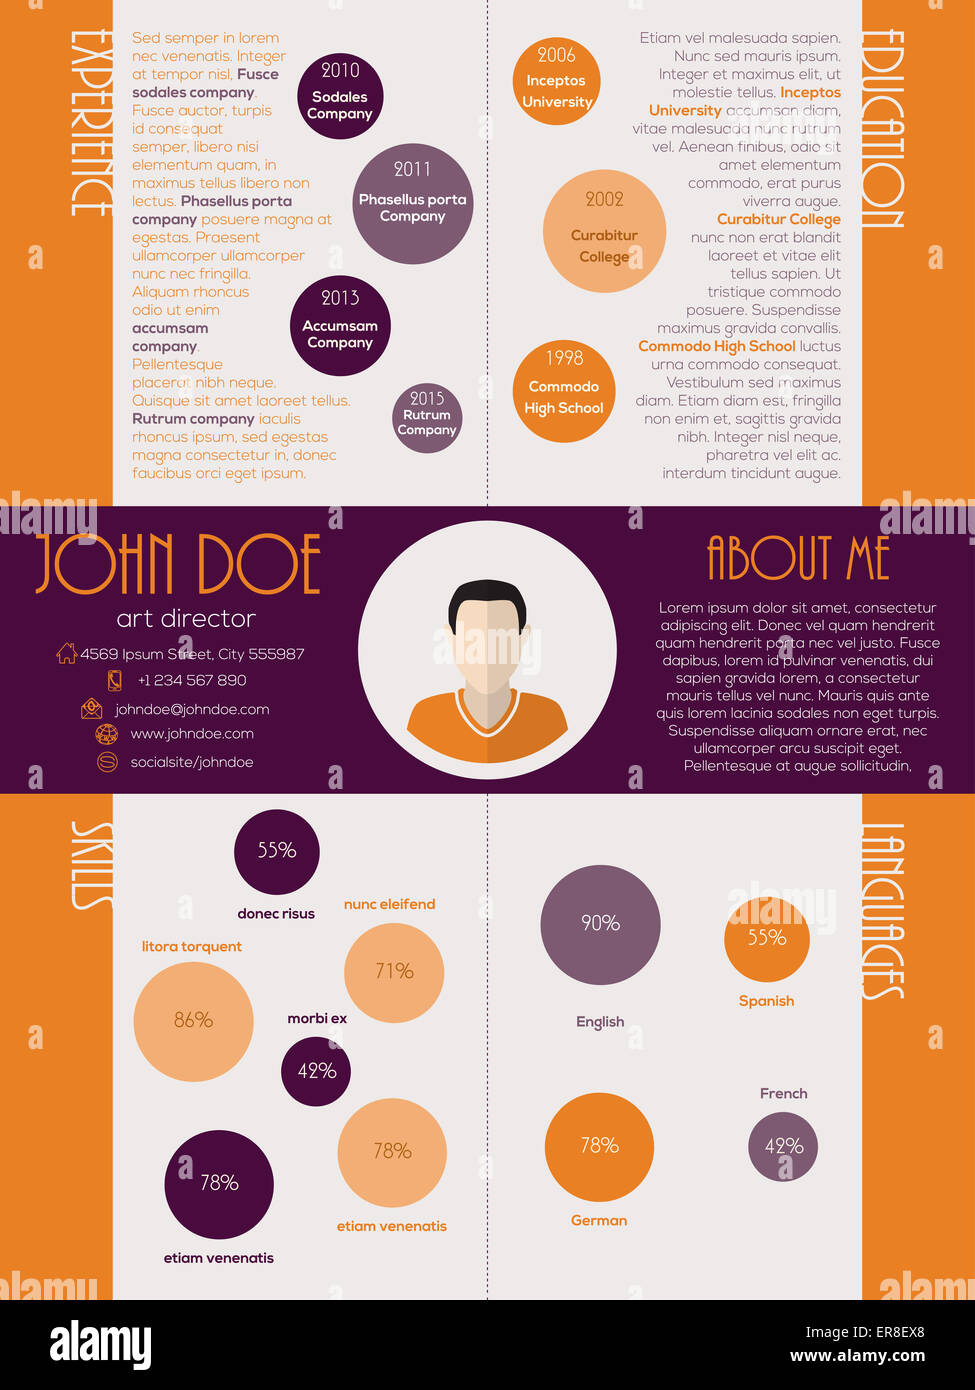 modern cv resume curriculum vitae design with orange purple colors stock photo  83165888